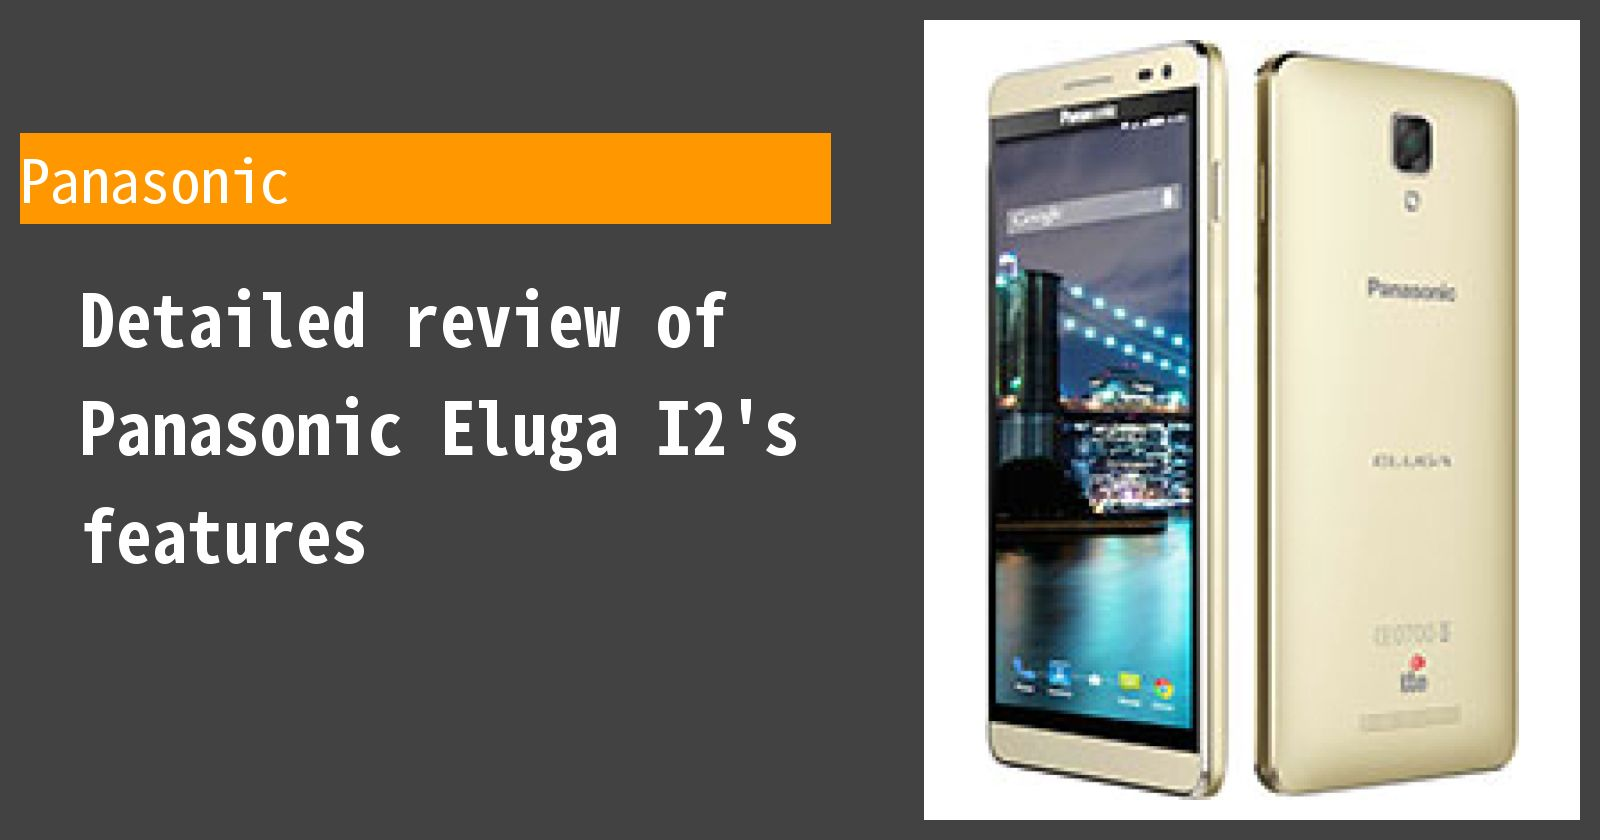 Detailed review of Panasonic Eluga I2's features